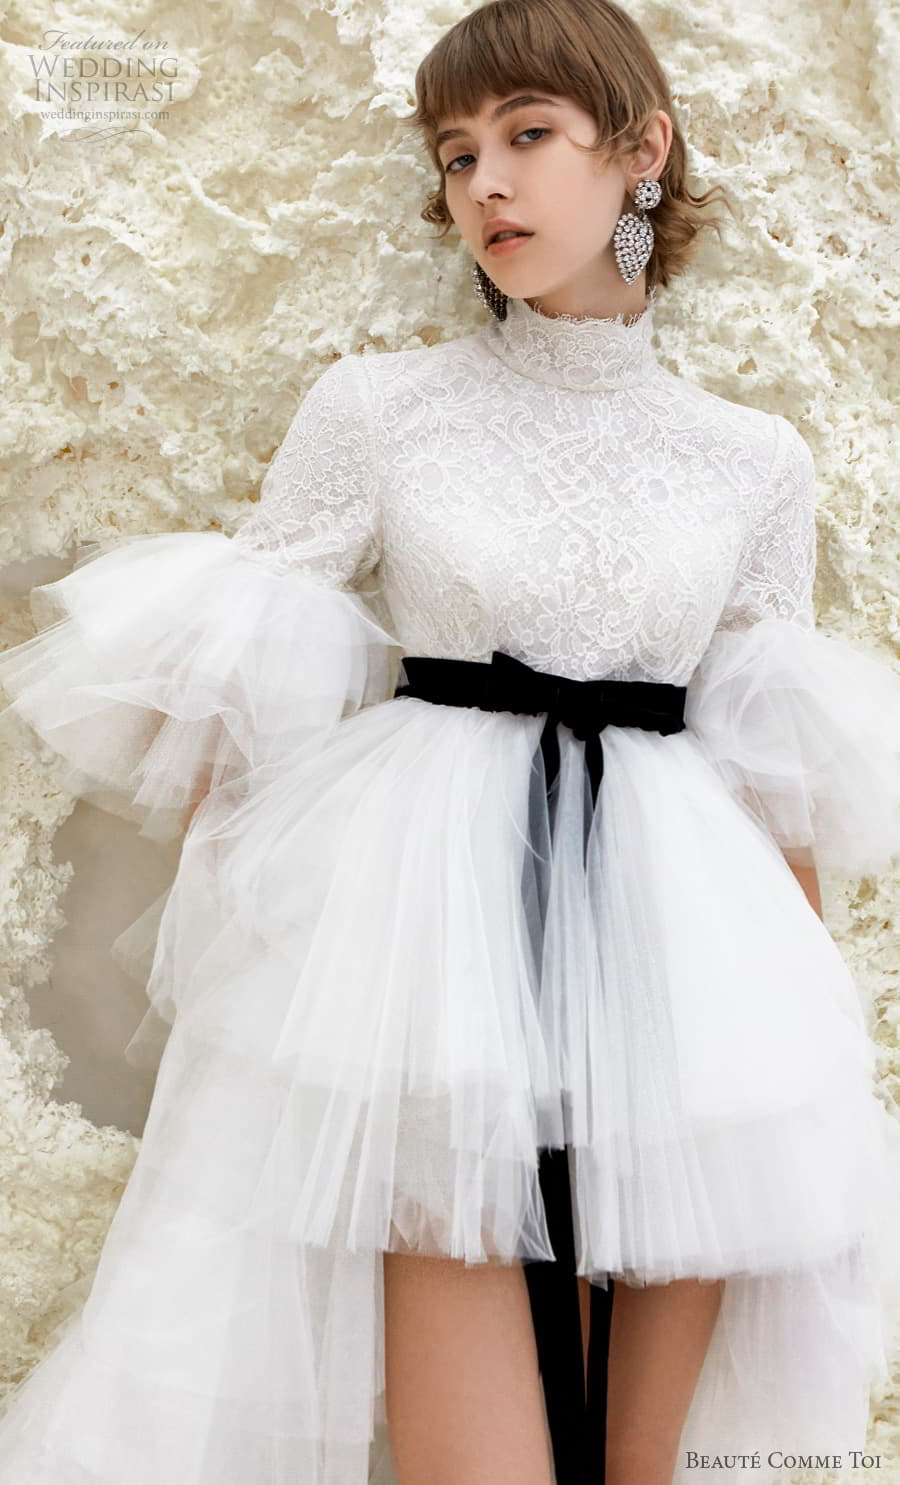 beaute comme toi spring 2022 bridal half poet sleeves high neck heavily embellished bodice short wedding dress a line overskirt covered lace back chapel train (karrisa) zv